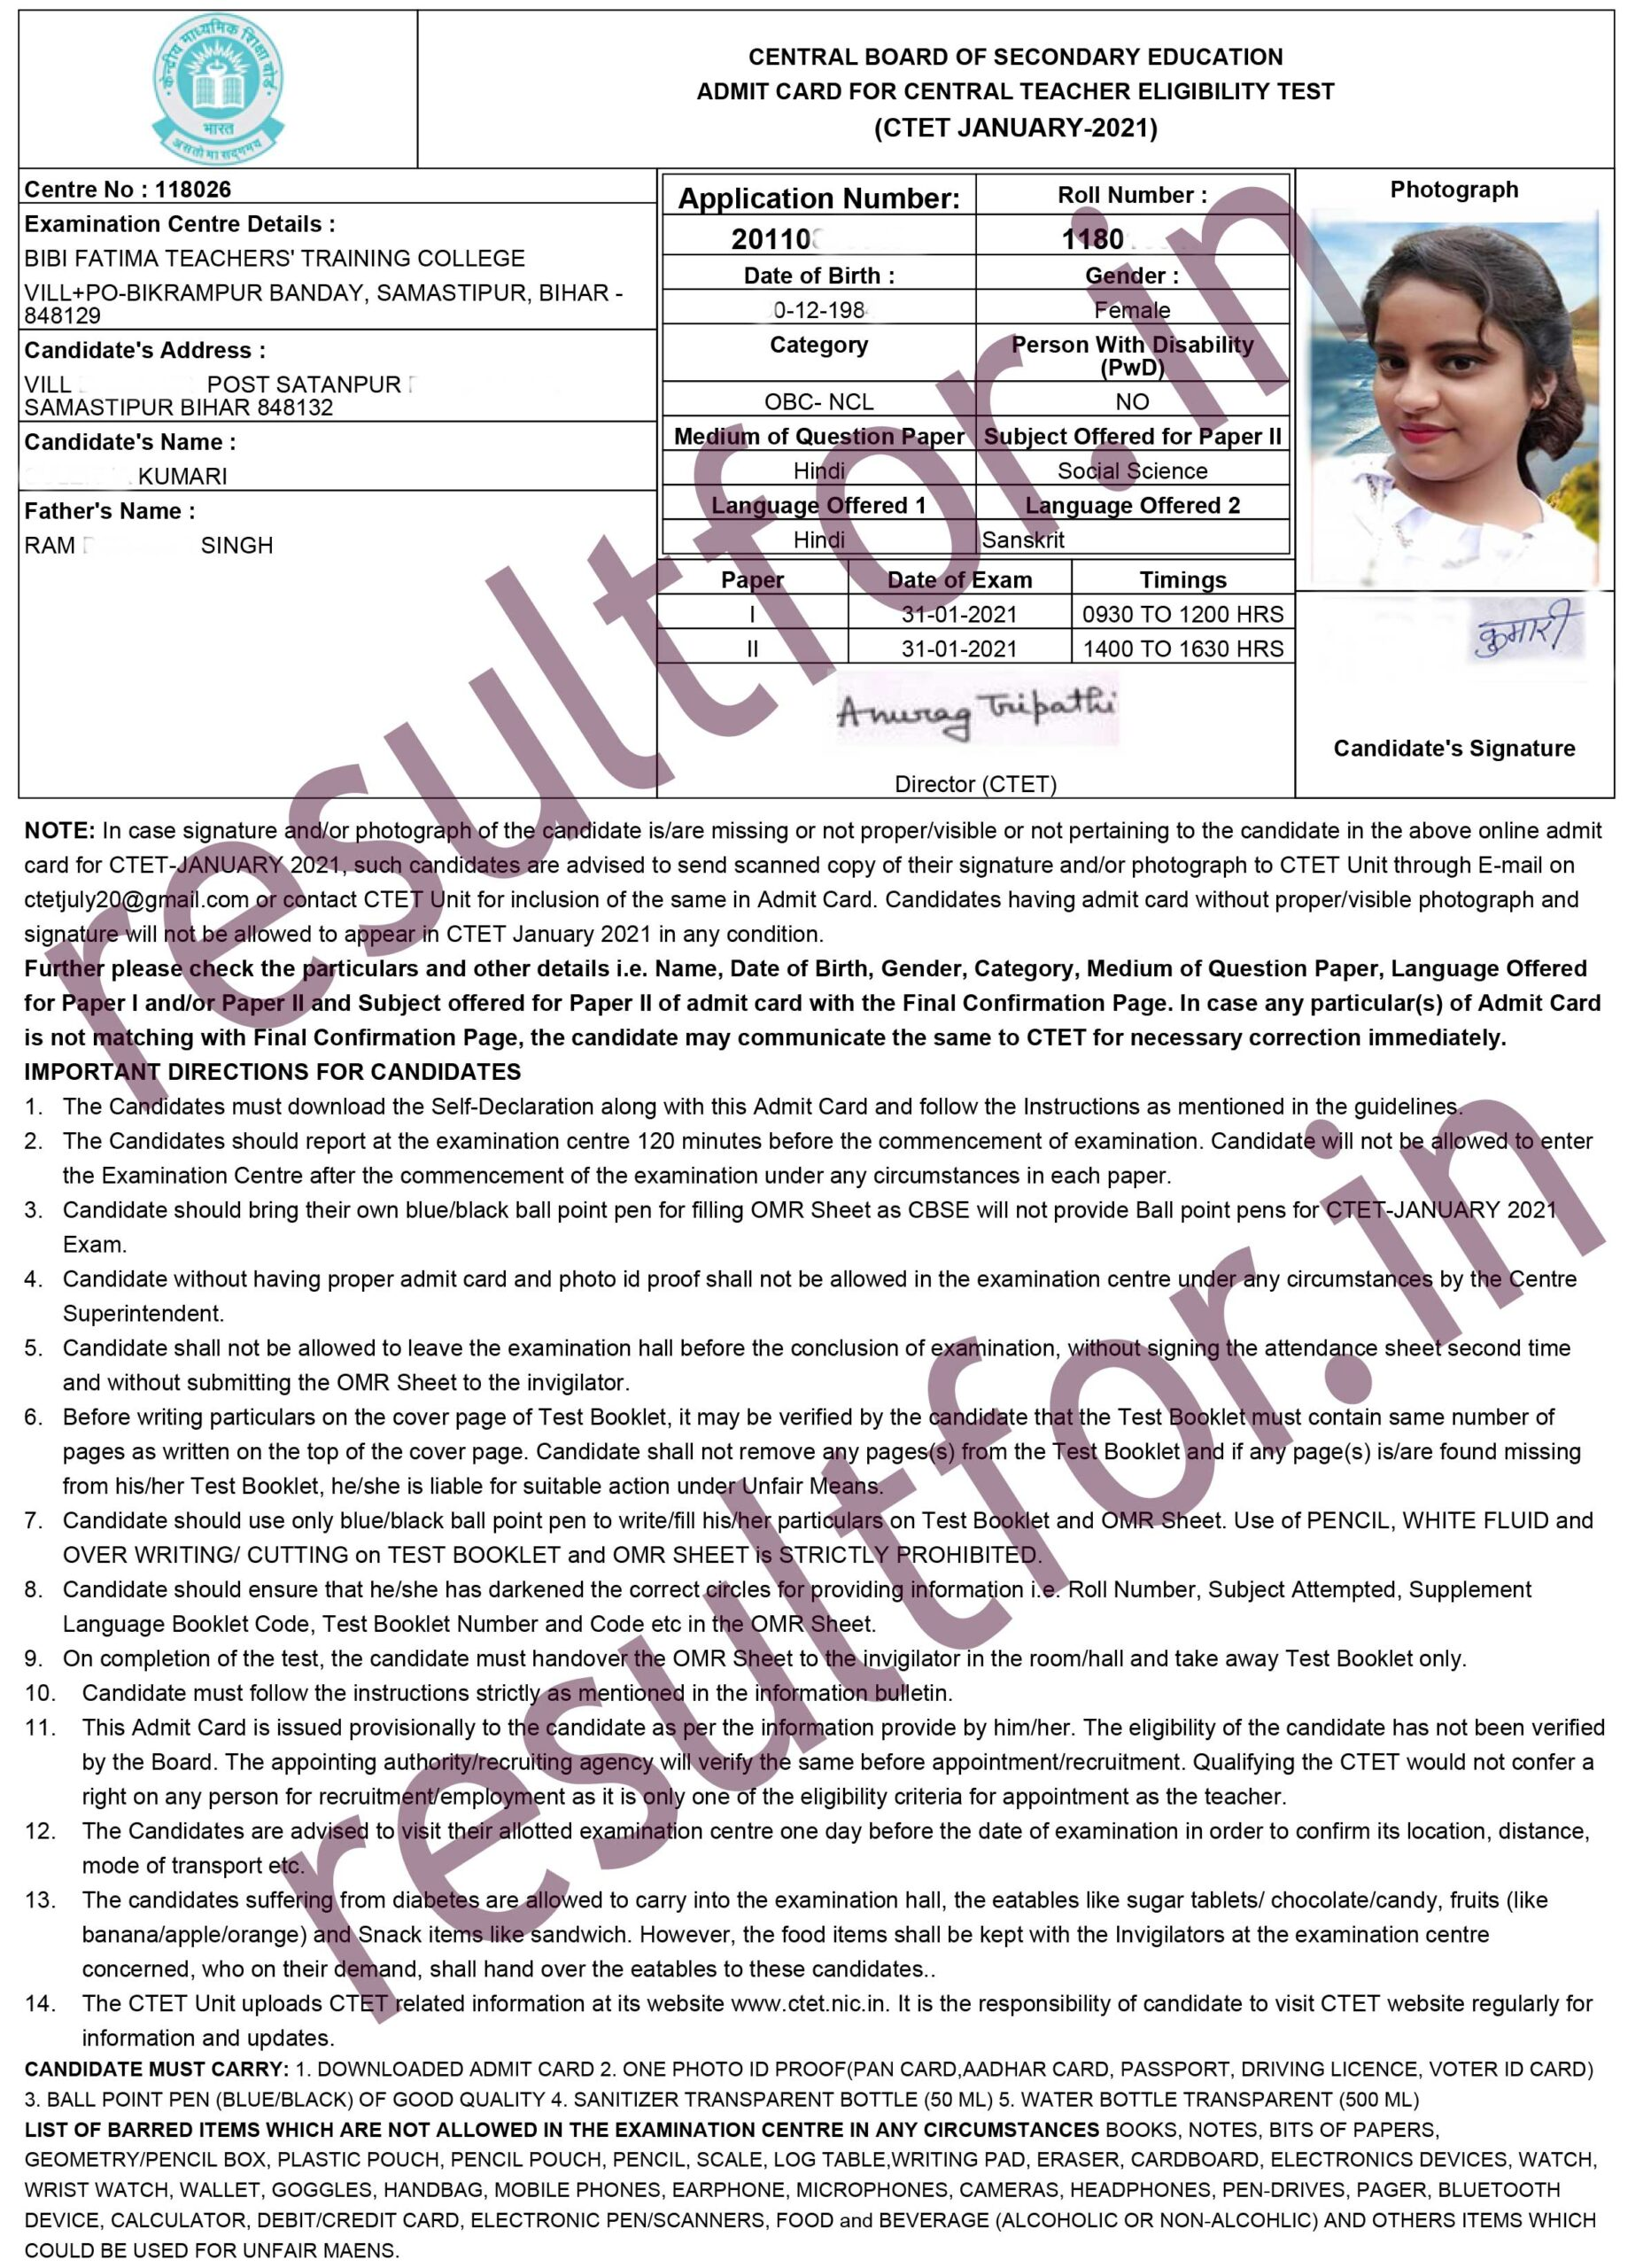 CTET-Admit-Card-Available-for-Download